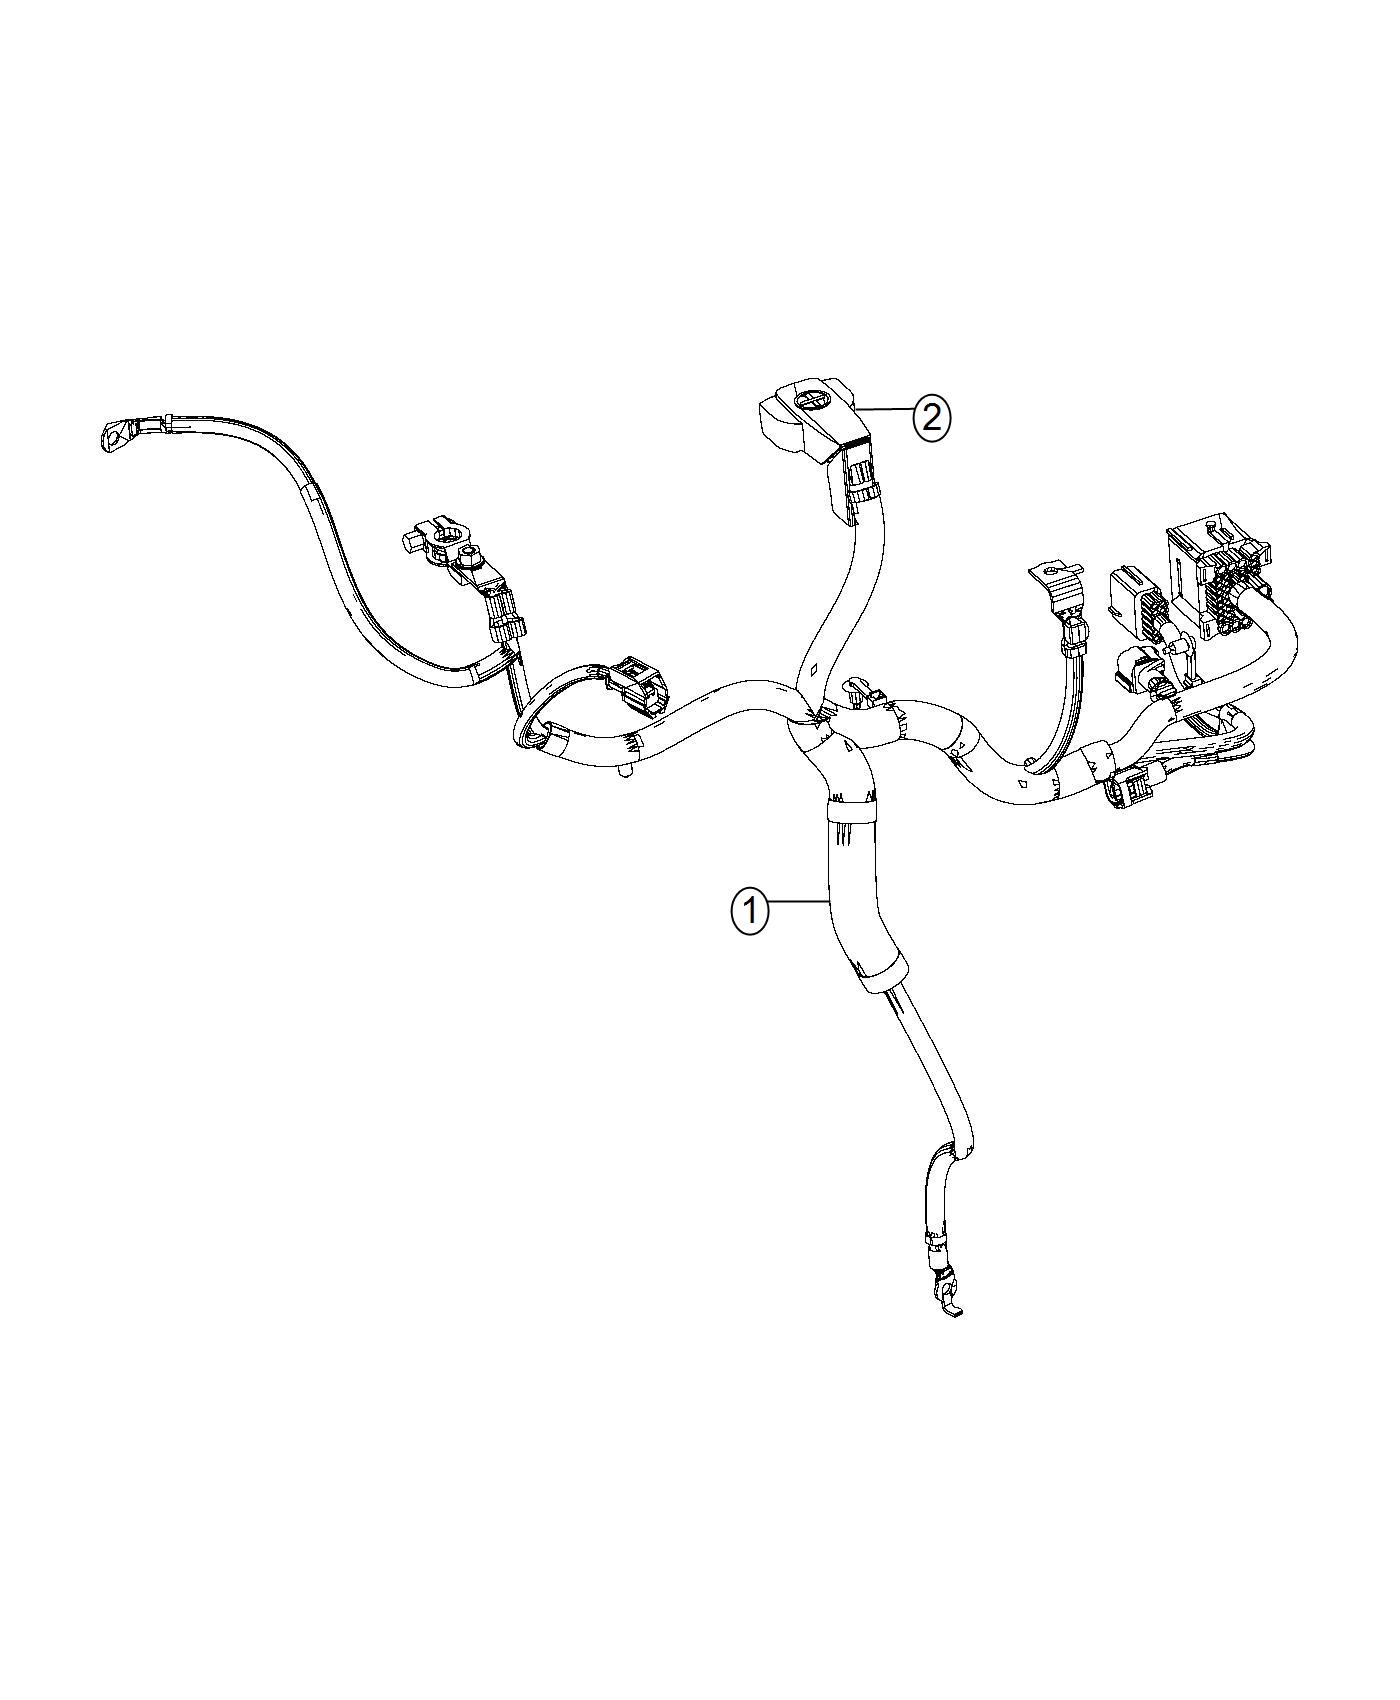 Ram Wiring Used For Battery Alternator And